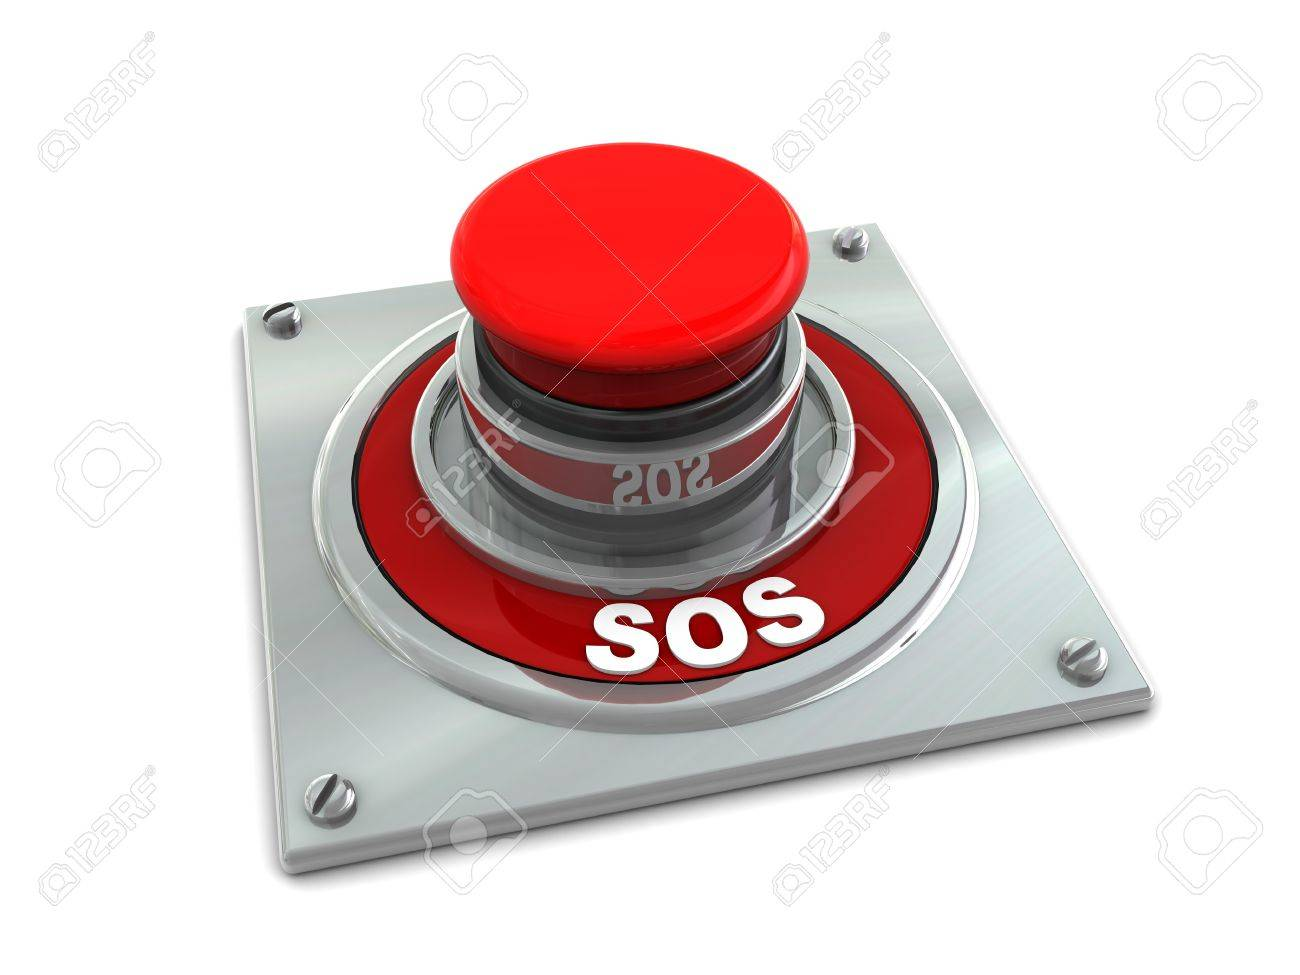 3d illustration of red button with text 'sos' on it, white background Stock Illustration - 4161180